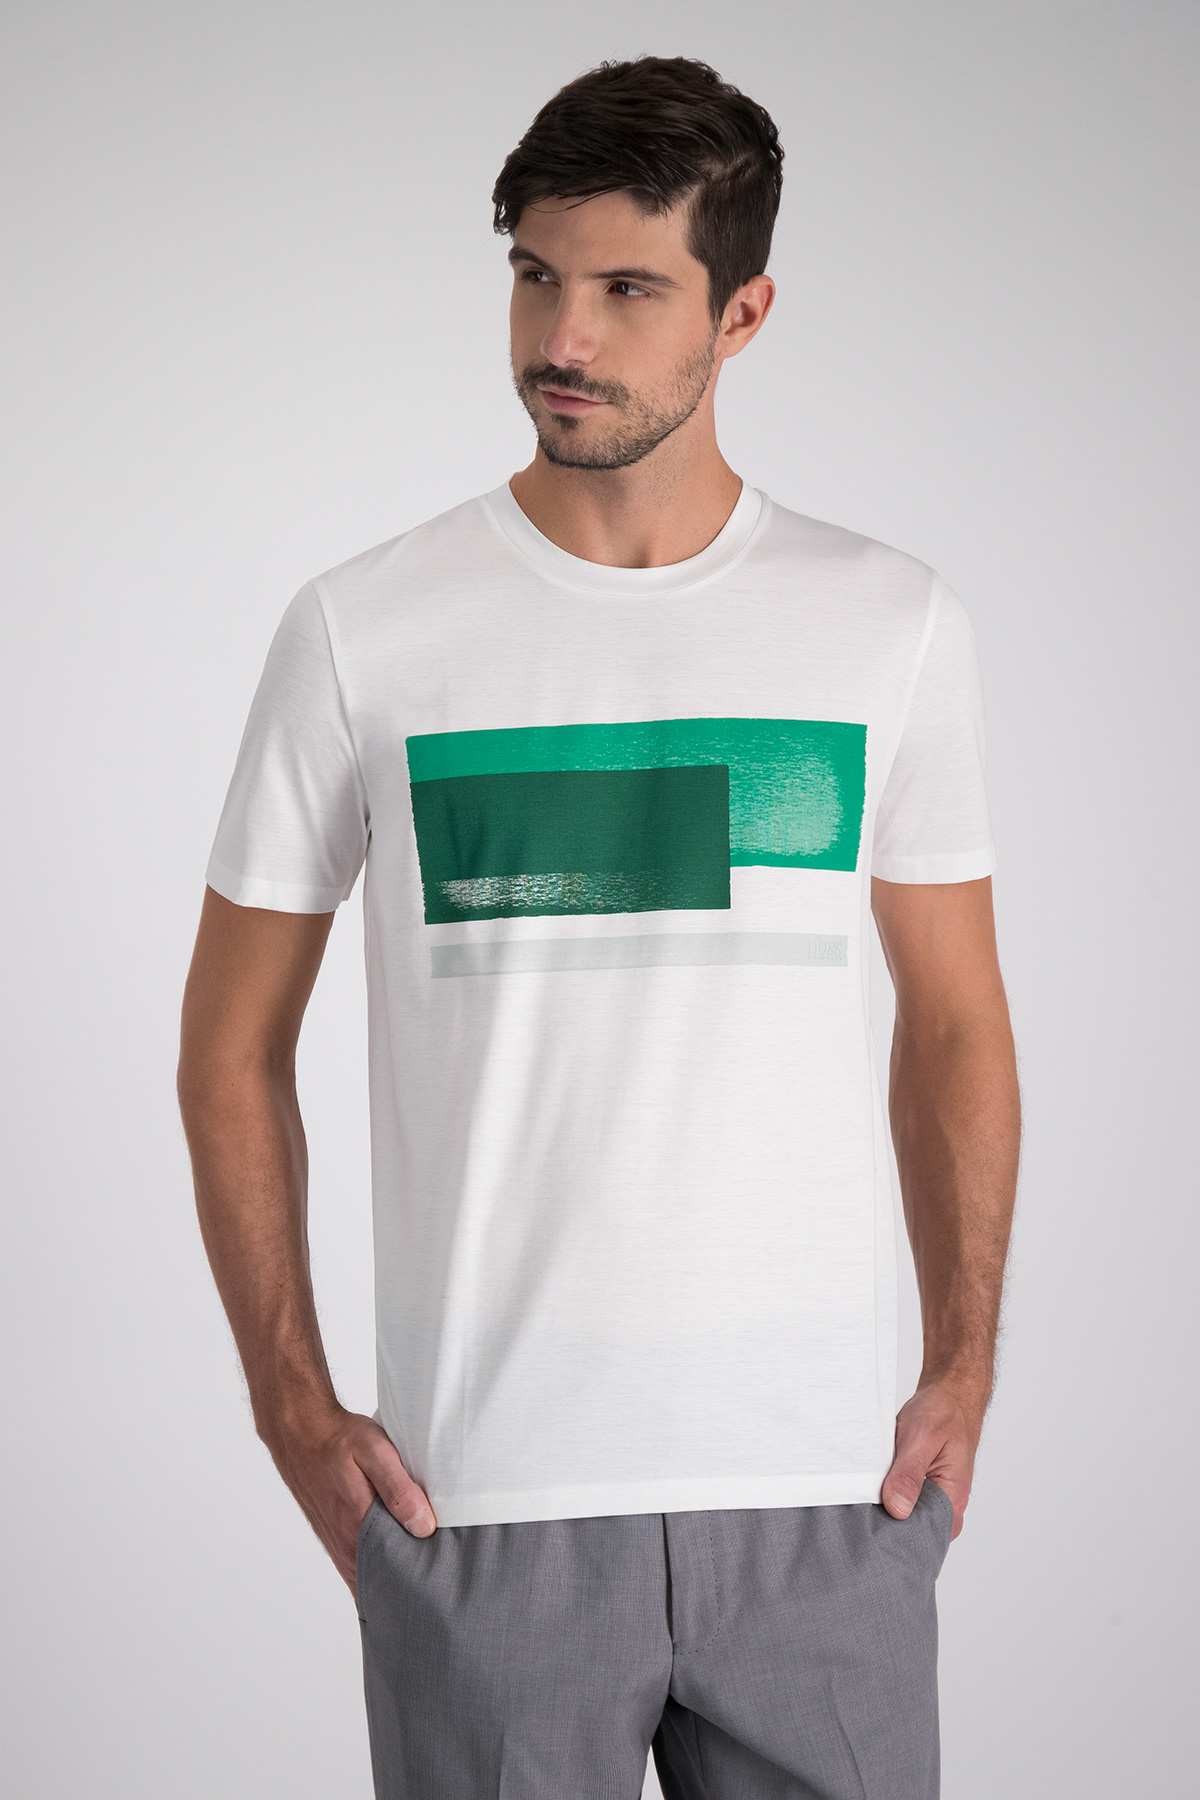 Playera BOSS con estampado frontal verde